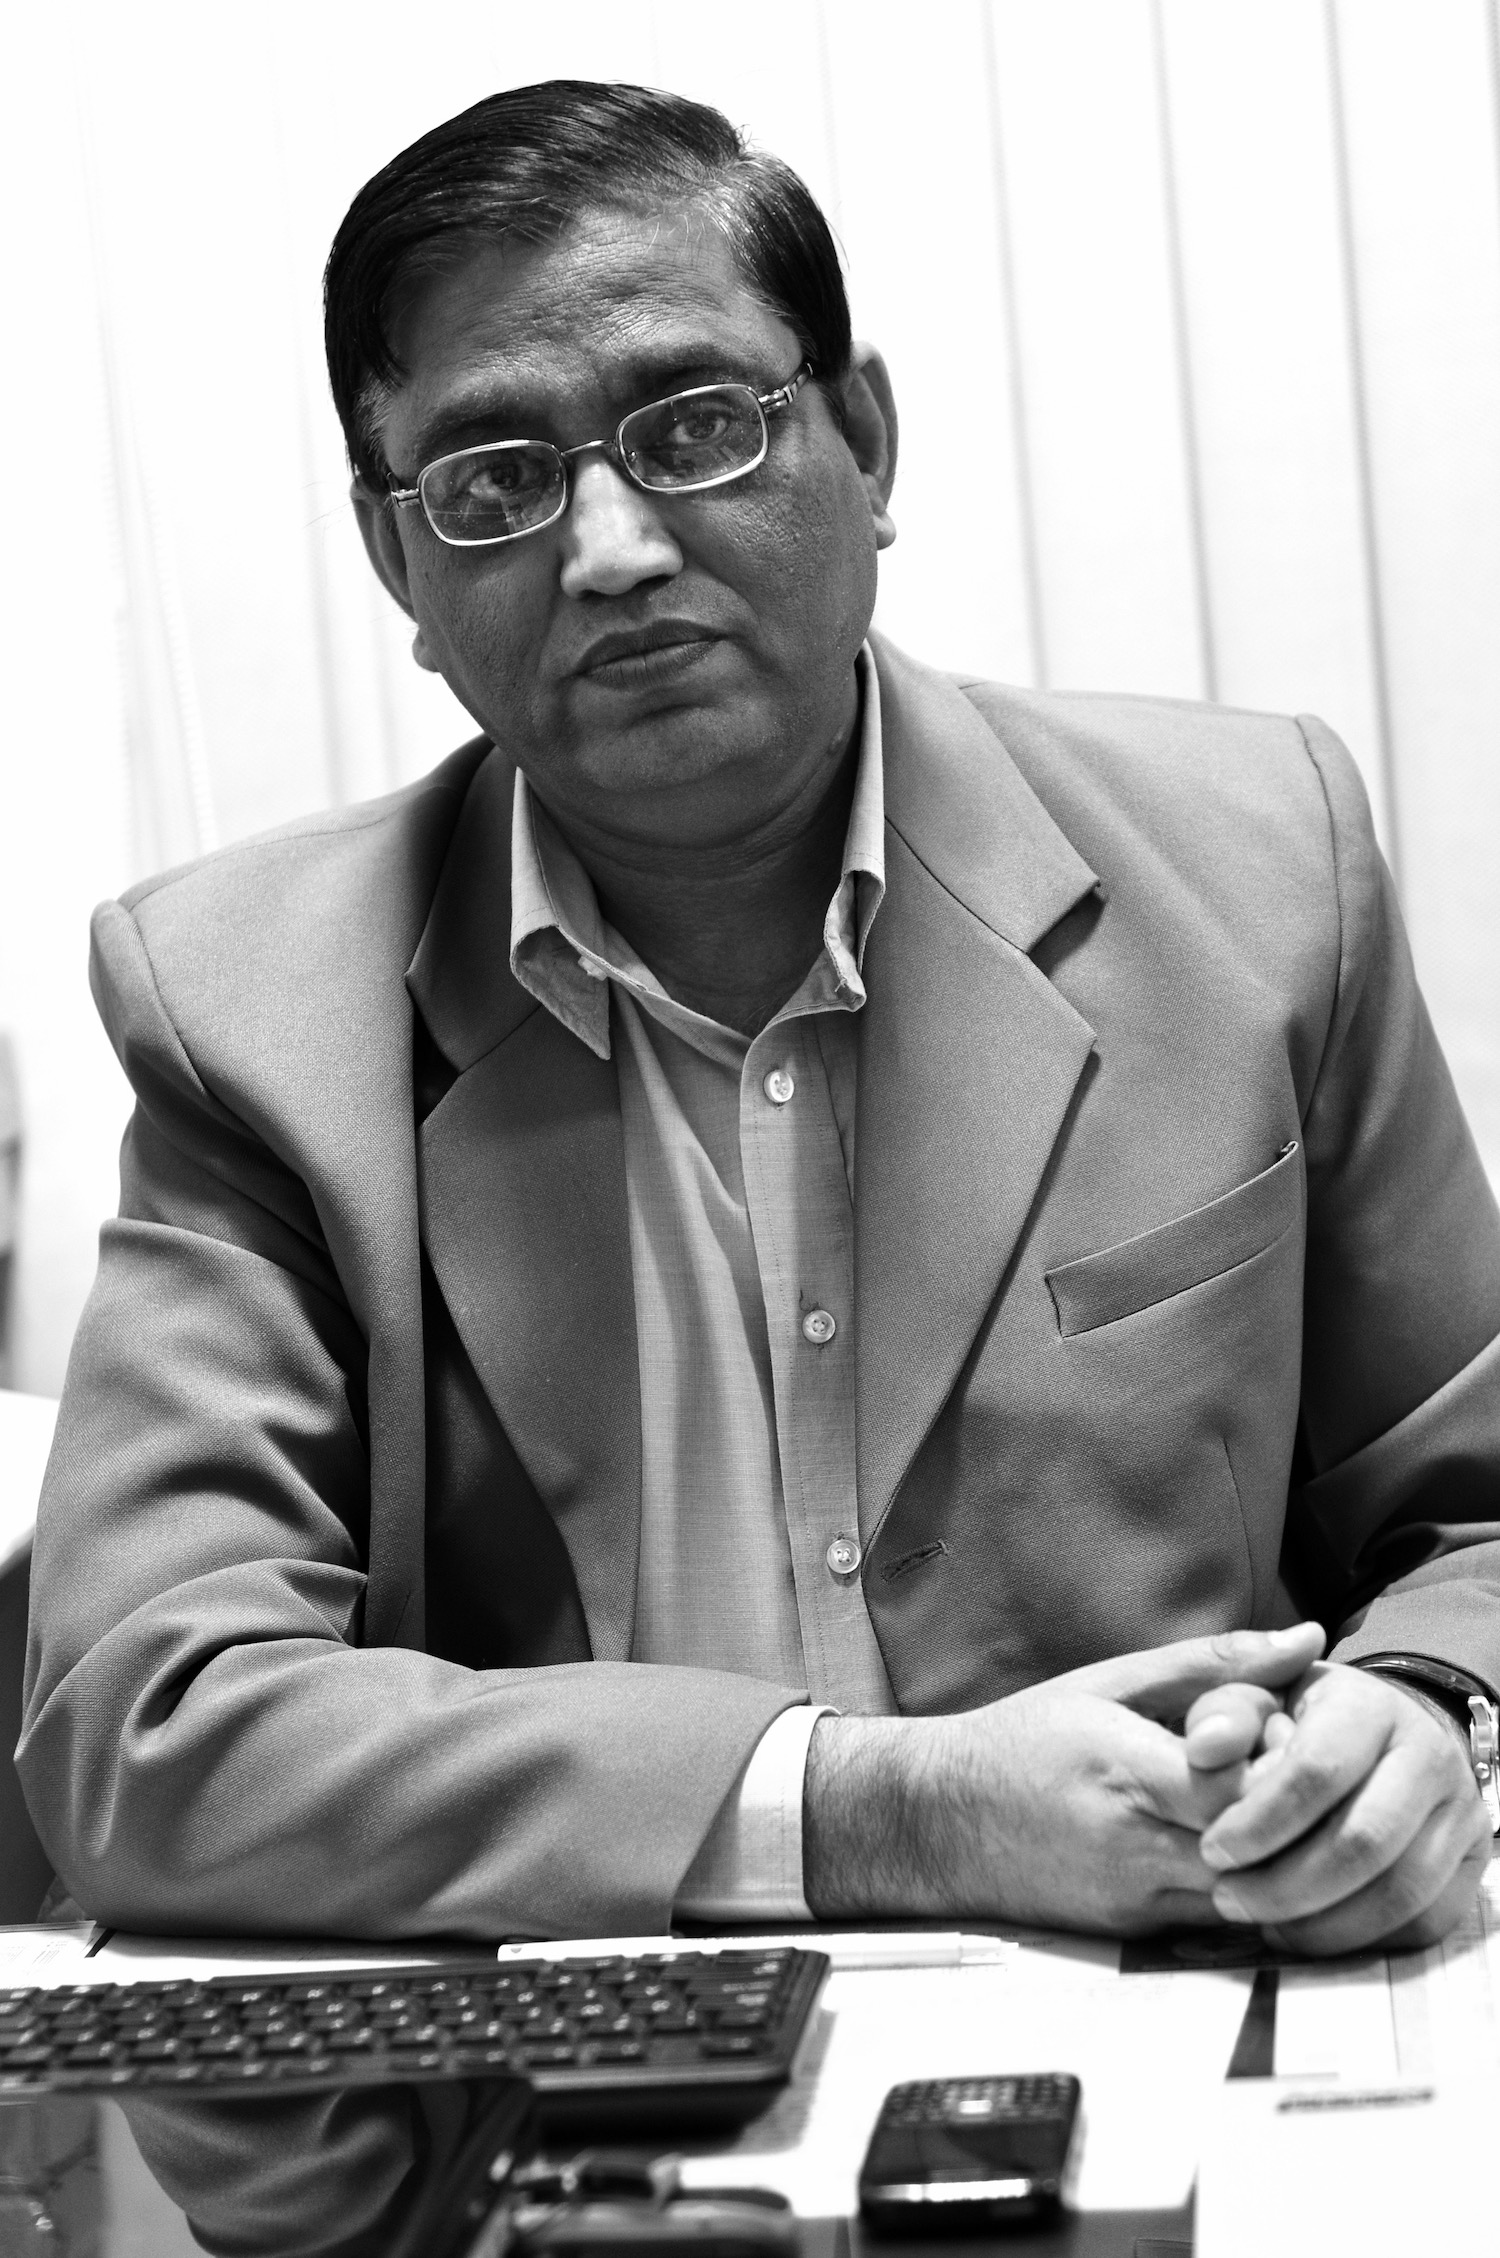 "Mr. M.K.M. Shah , 59 years is a bachelor of Commerce and Post Graduate of Social Science with P.G. Diploma in Labor Laws, Labor Welfare and Personal Management with ""GOLD MEDAL.""  He is Certified Associate of Indian Institute of Bankers (CAIIB). He is an expert of Corporate Finance, Credit Risk Management, Non-Performing Assets Management, Foreign Exchange Management, System Management, Human Resource Management (HRM), Management Information System (MIS), Planning & Development and Audit & Review."